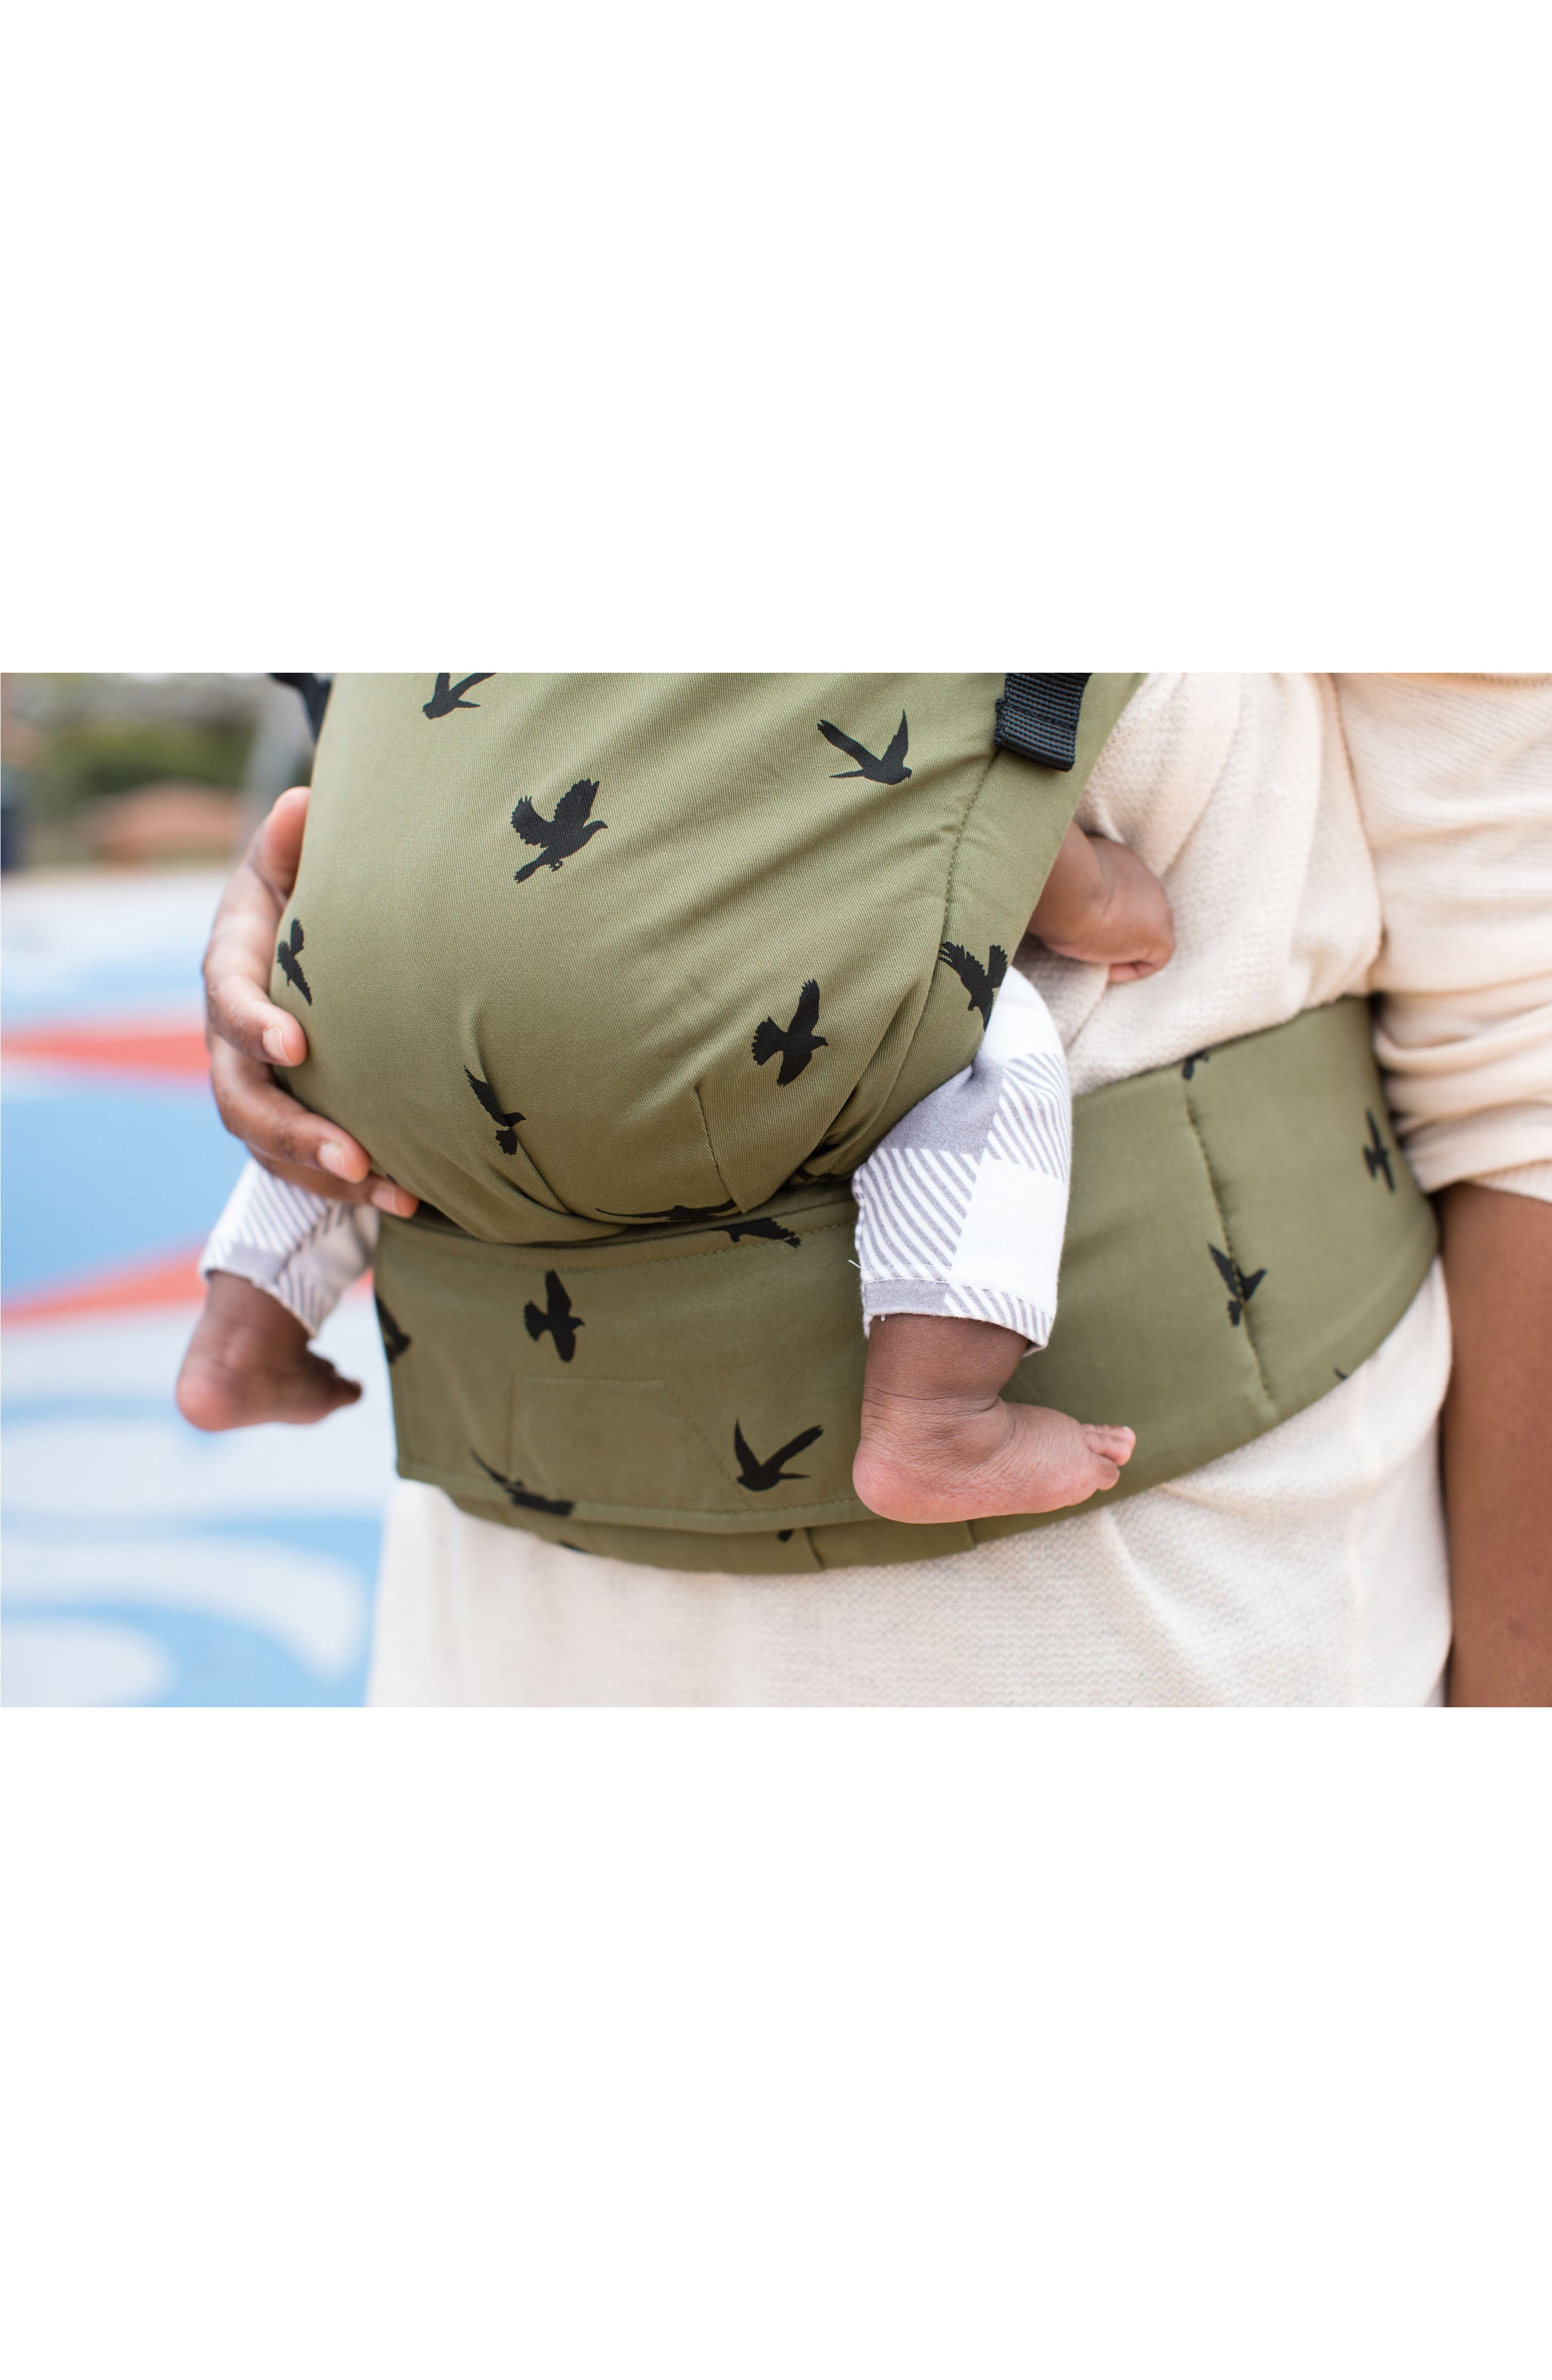 Soar Free-to-Grow Baby Carrier,                             Alternate thumbnail 5, color,                             Soar